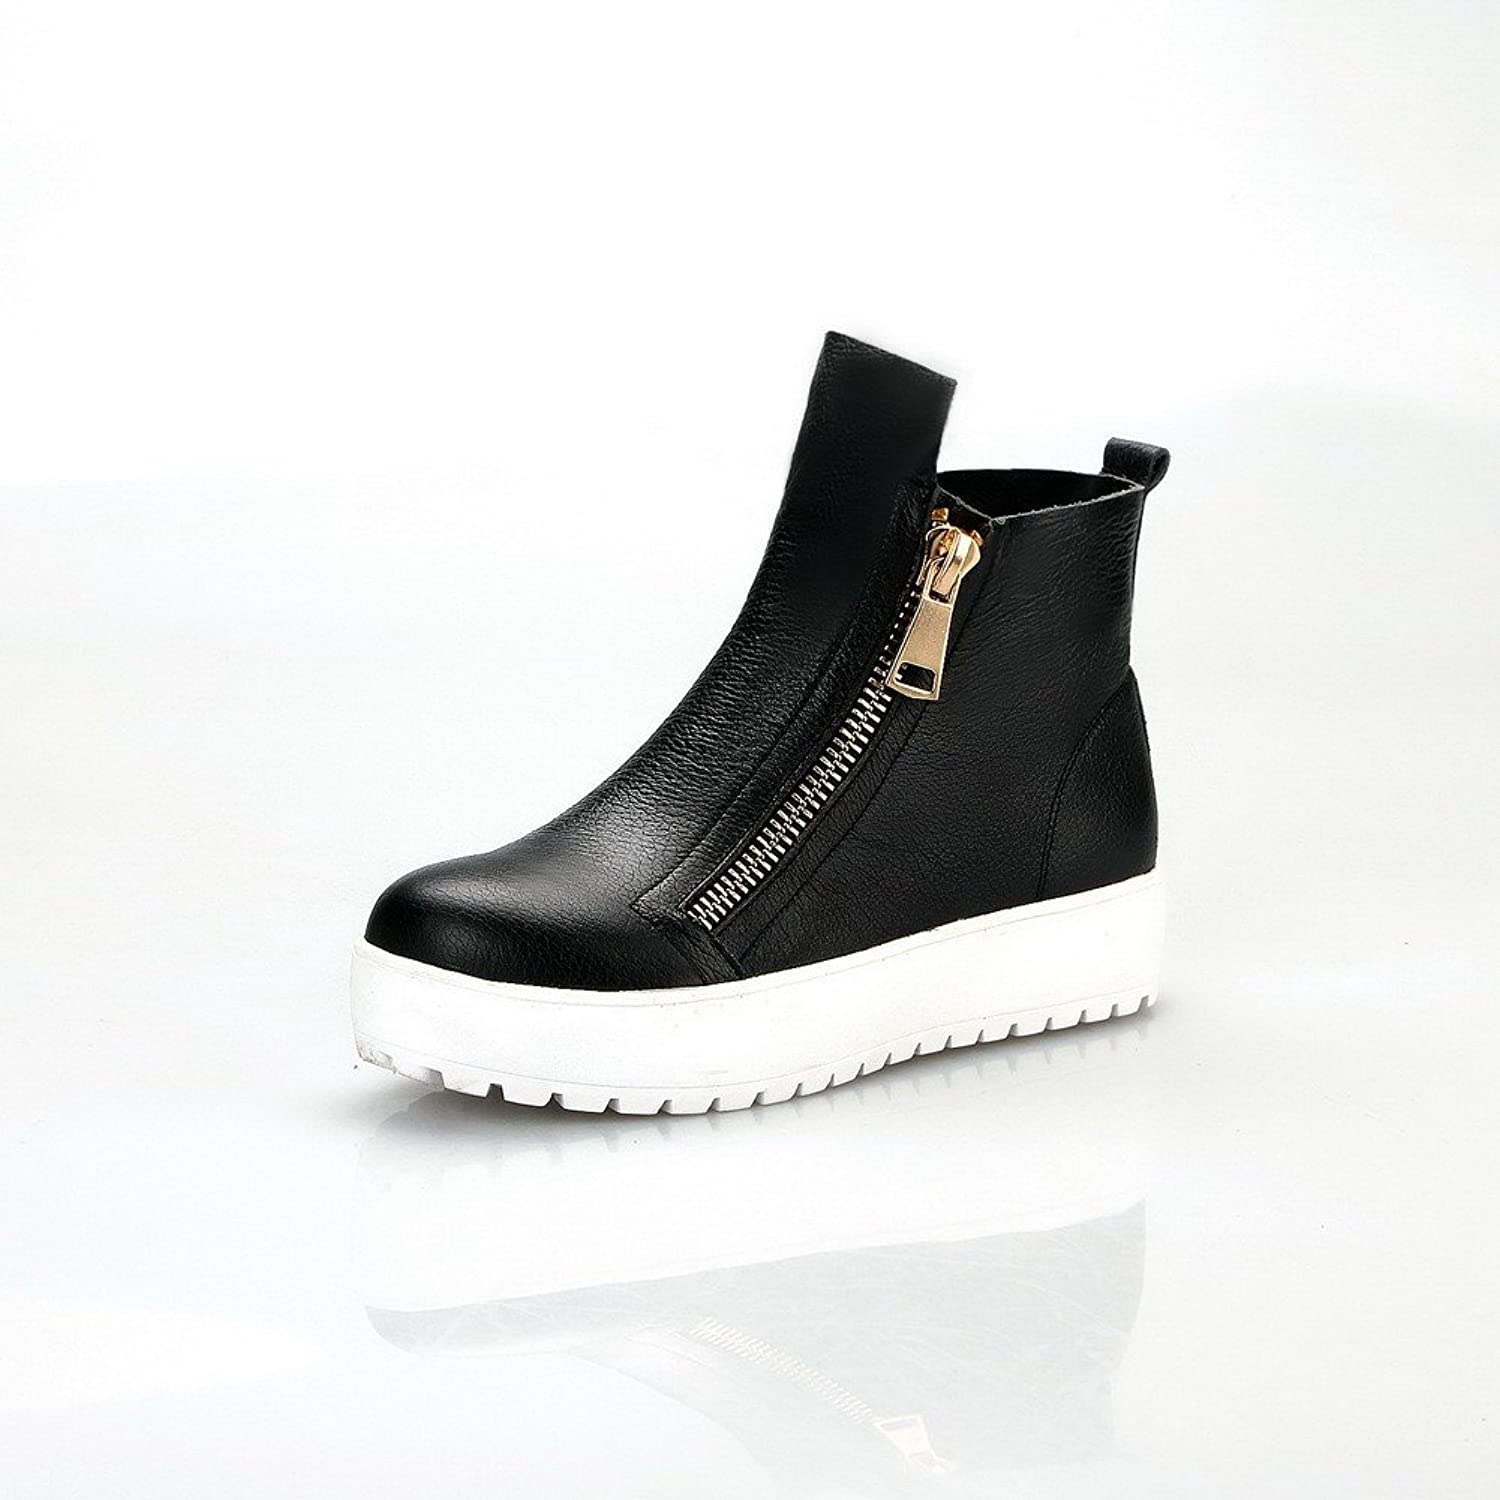 WeenFashion Women's Cow Leather Low-heels Round-toe Boots with Zippers and Non-Slipping Sole